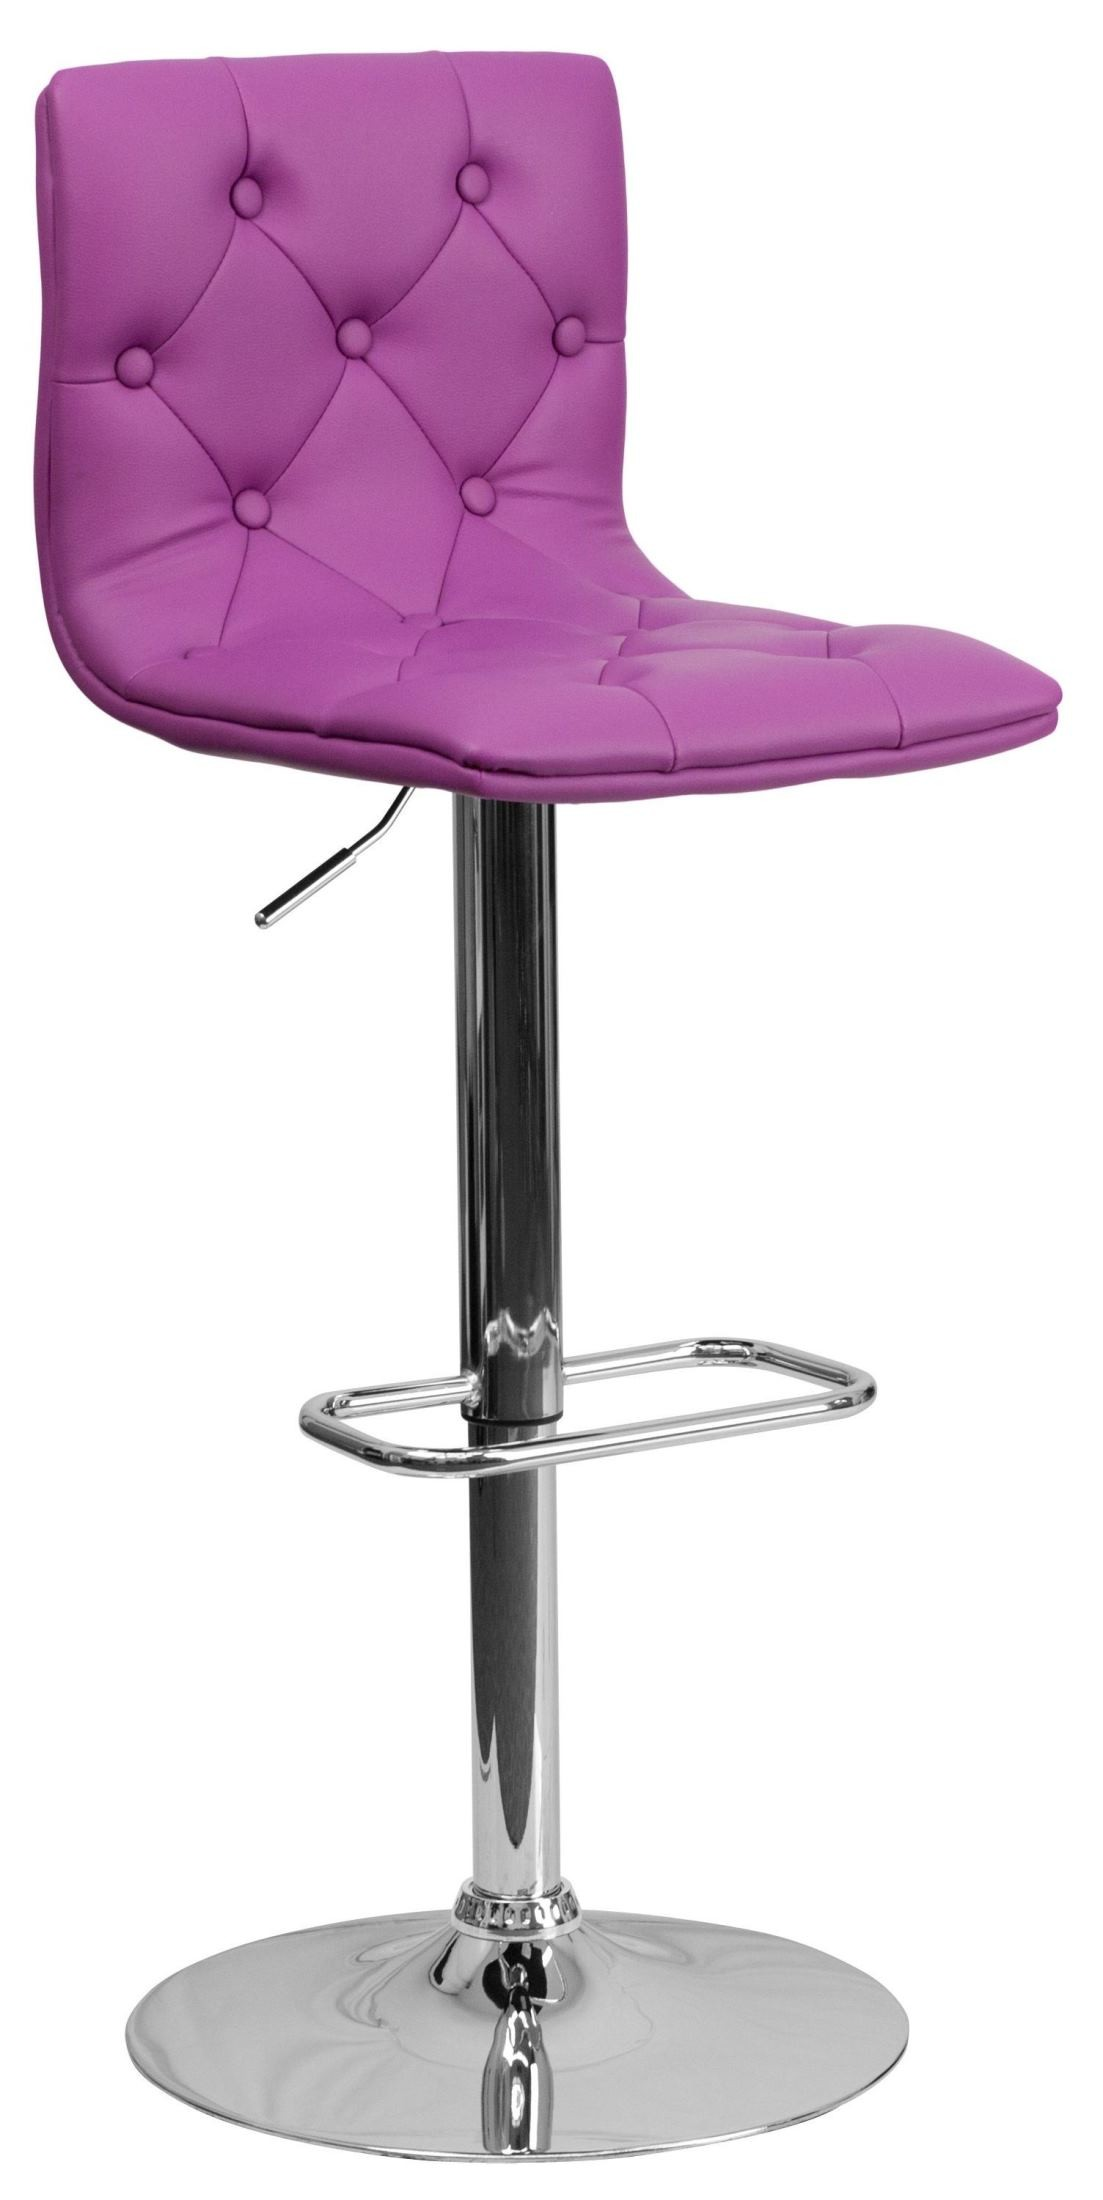 Tufted Purple Adjustable Height Bar Stool from Renegade  : ch 112080 pur gg from colemanfurniture.com size 1103 x 2200 jpeg 156kB